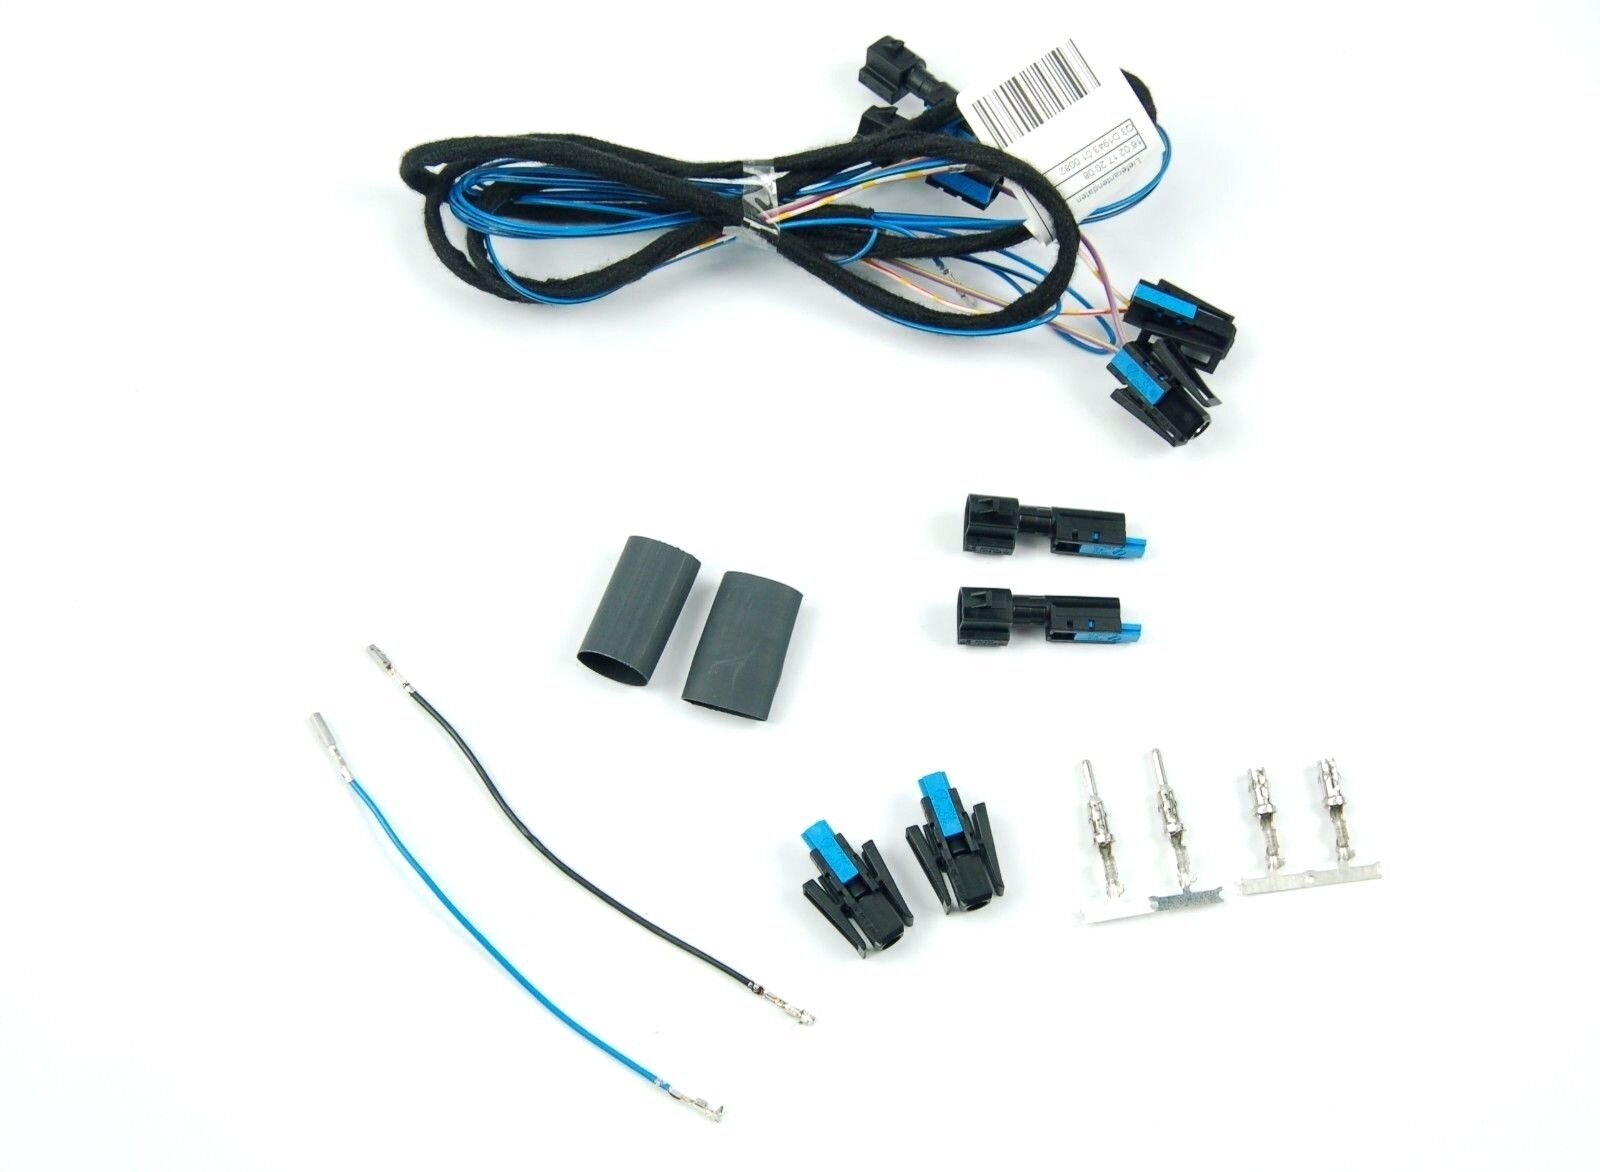 s l1600 genuine oem bmw 3 series e46 wiring harness cable set cruise BMW Wiring Harness Chewed Up at readyjetset.co